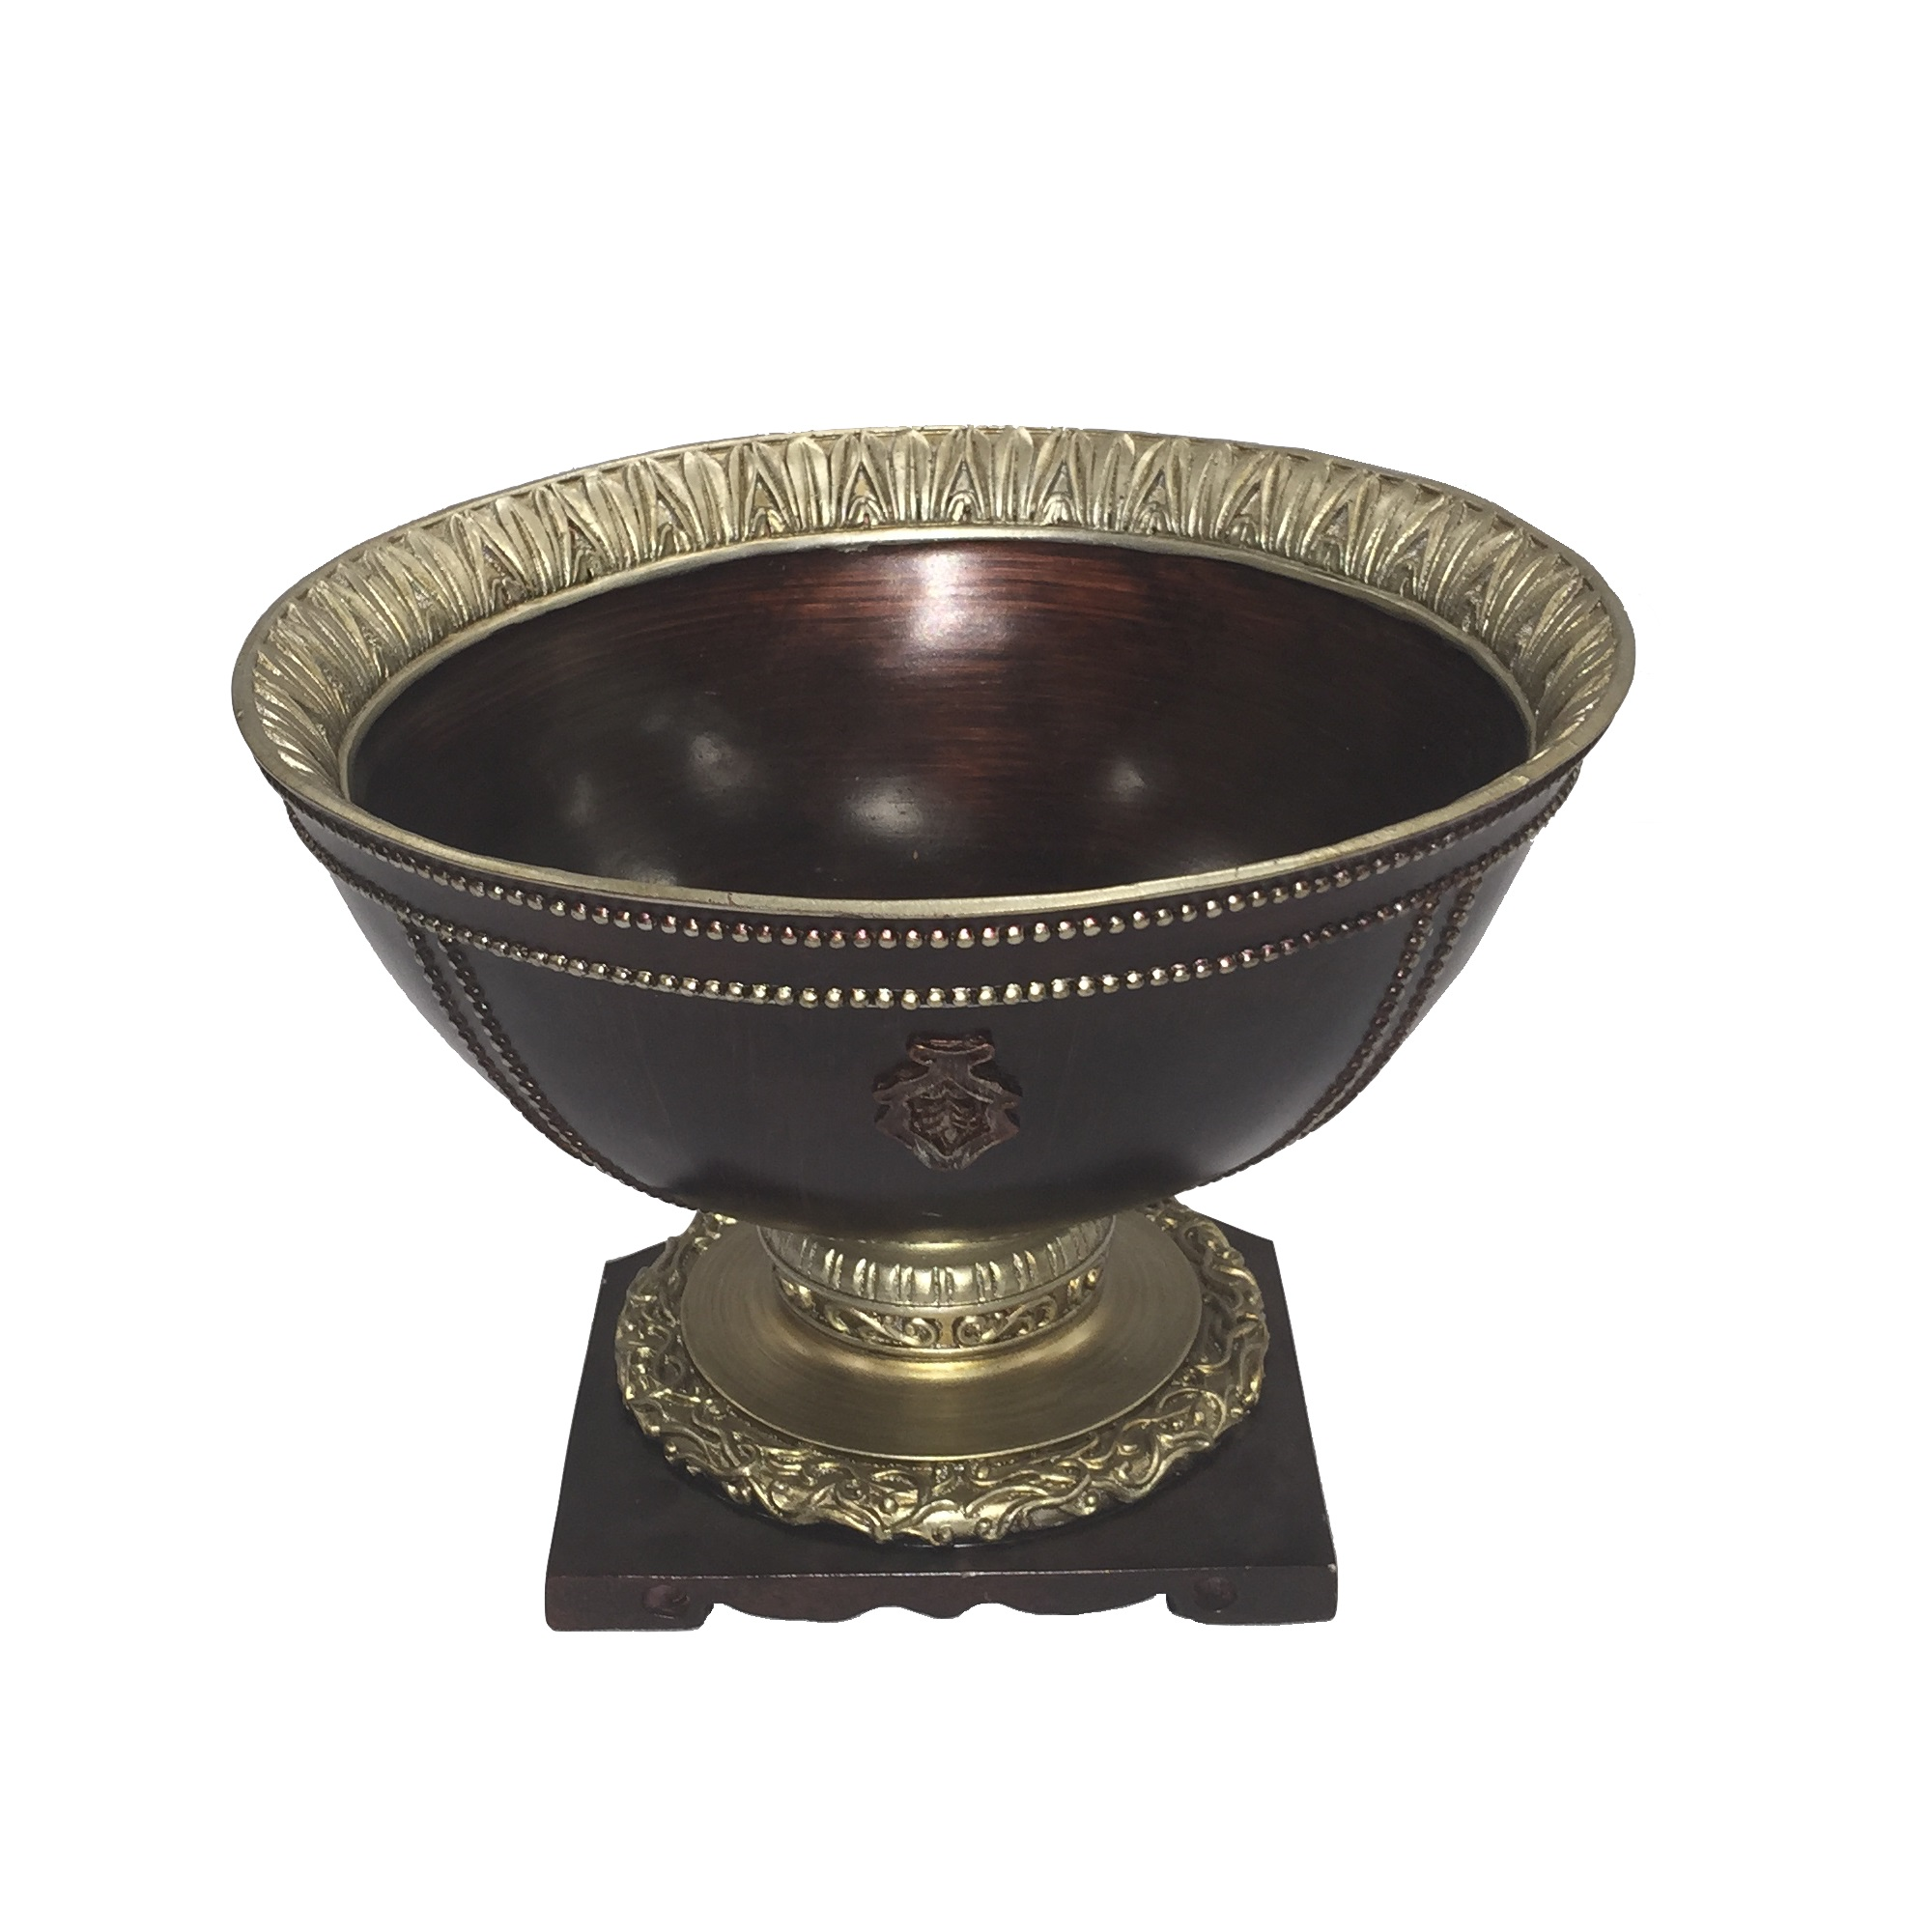 STA-B240 Decorative Bowl